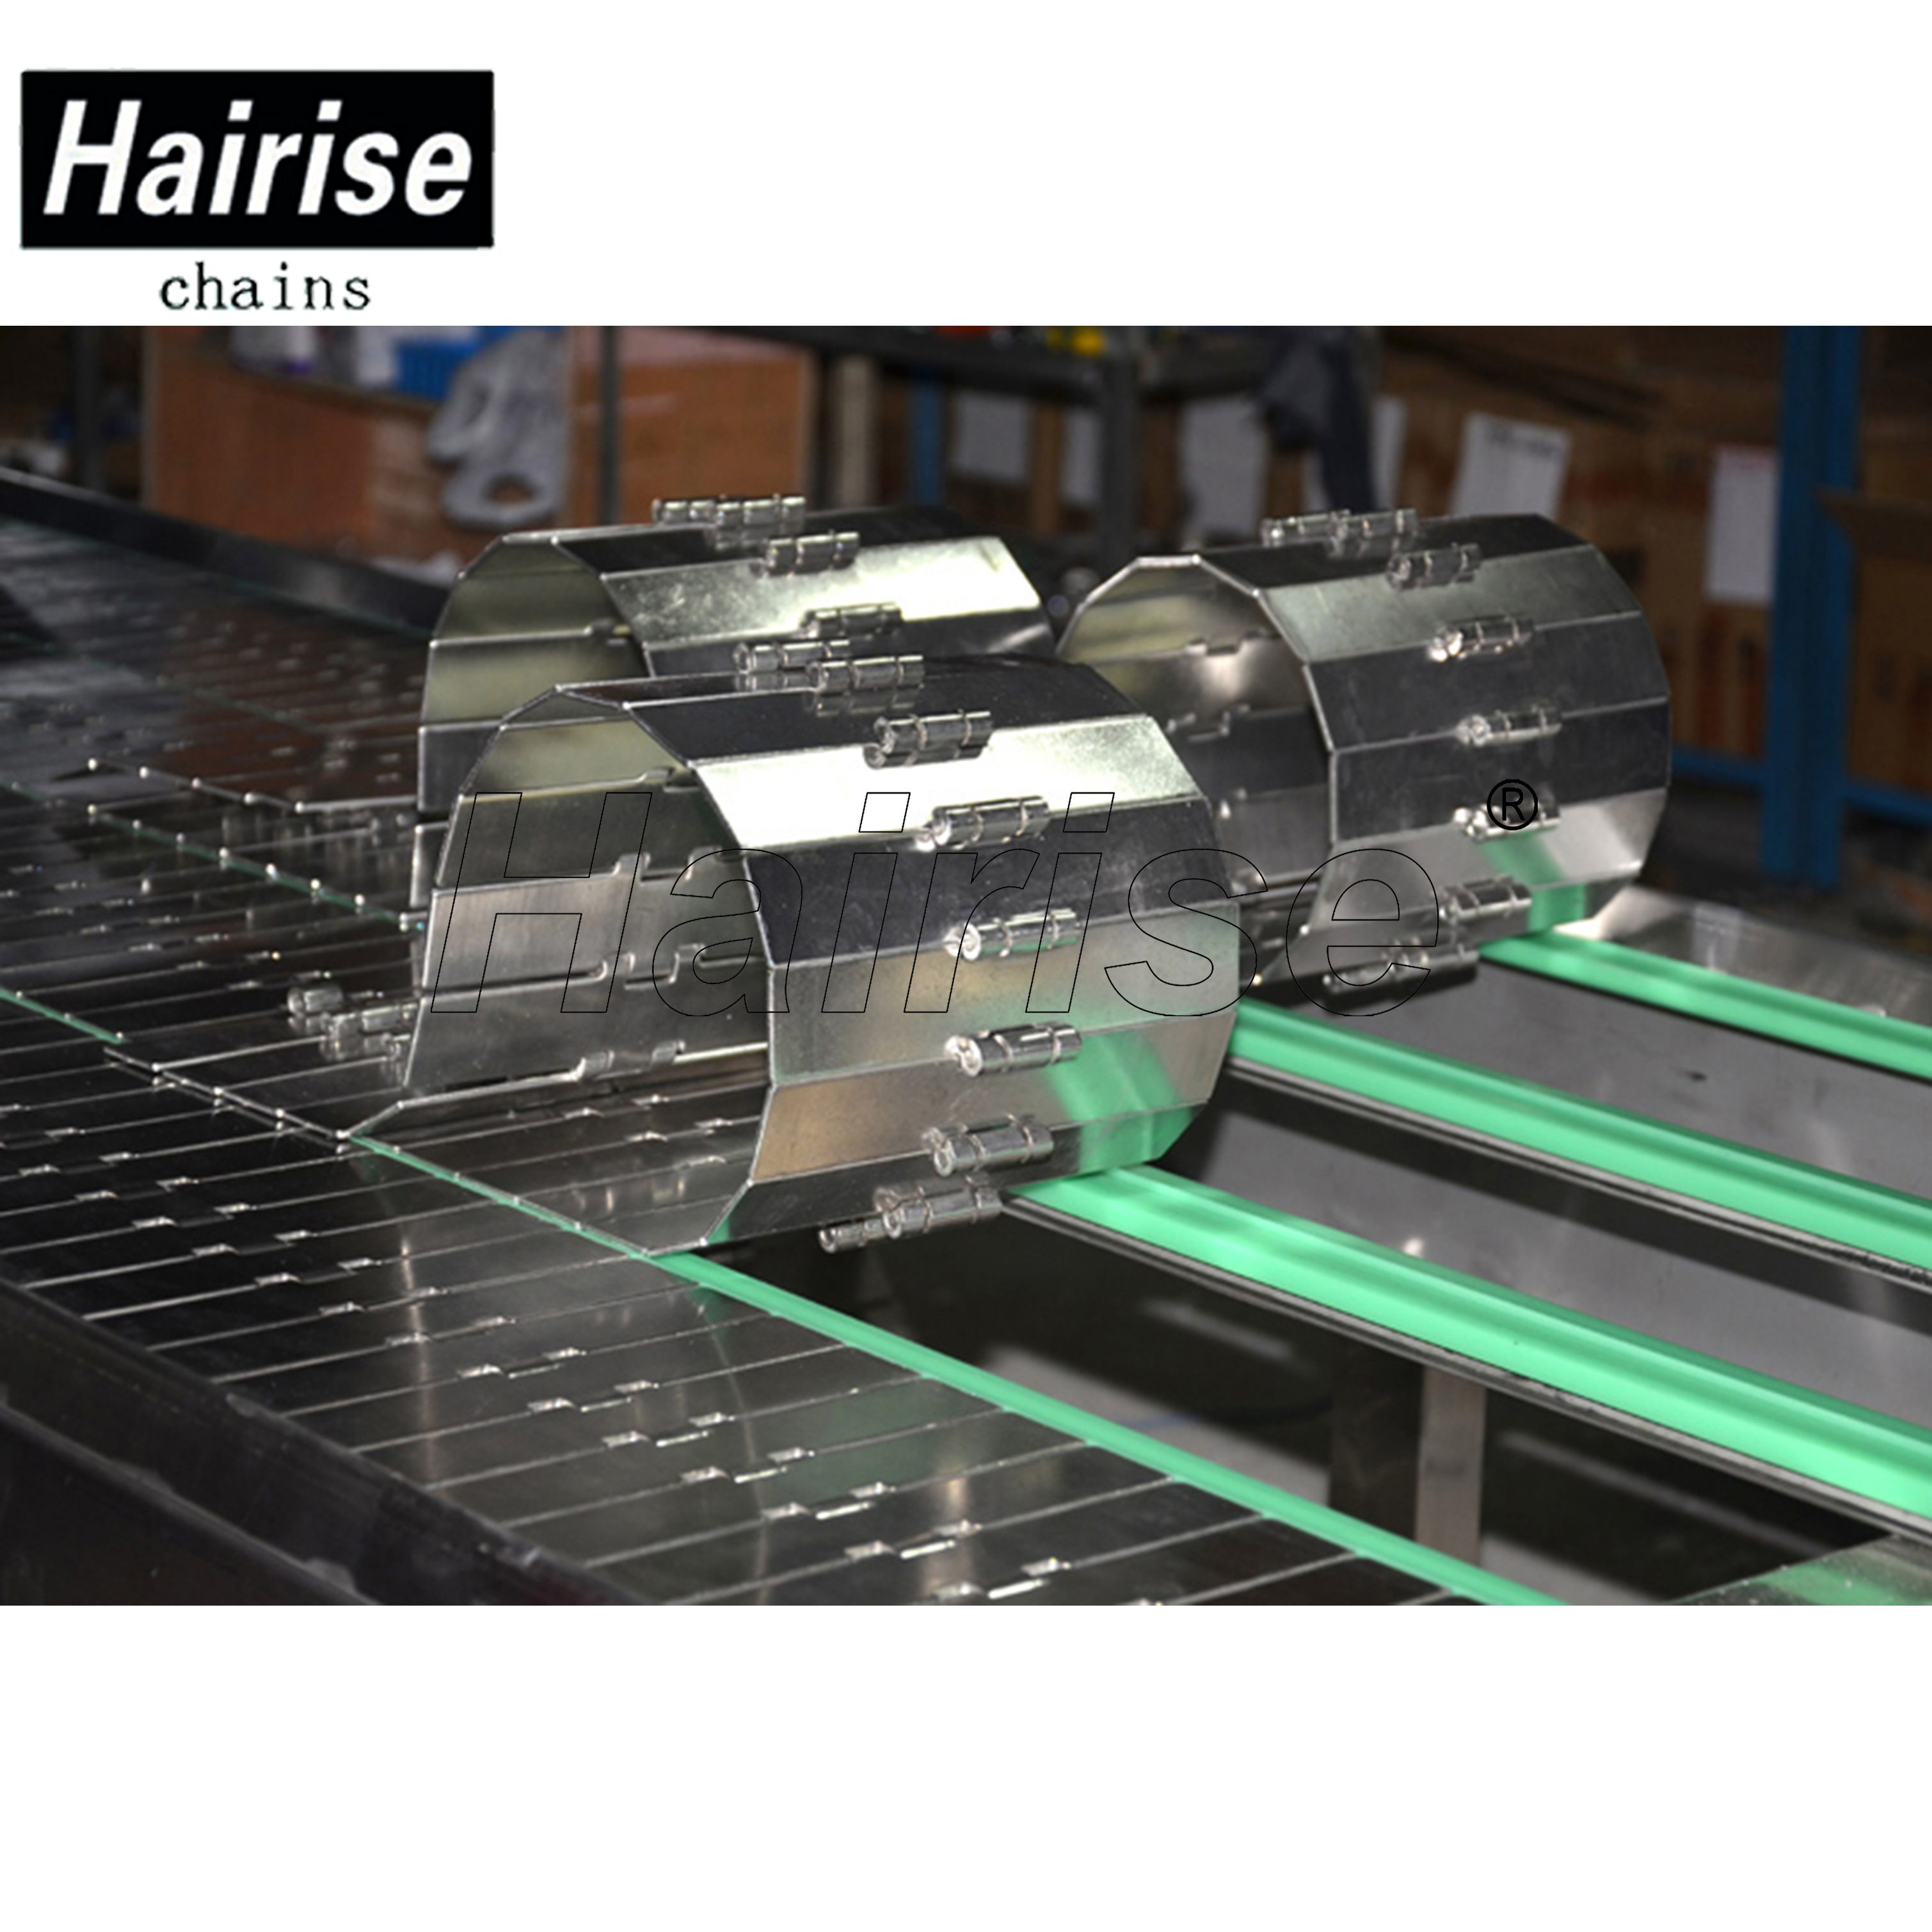 Hairise Straight Conveyor with Steel Table Top Chains Featured Image